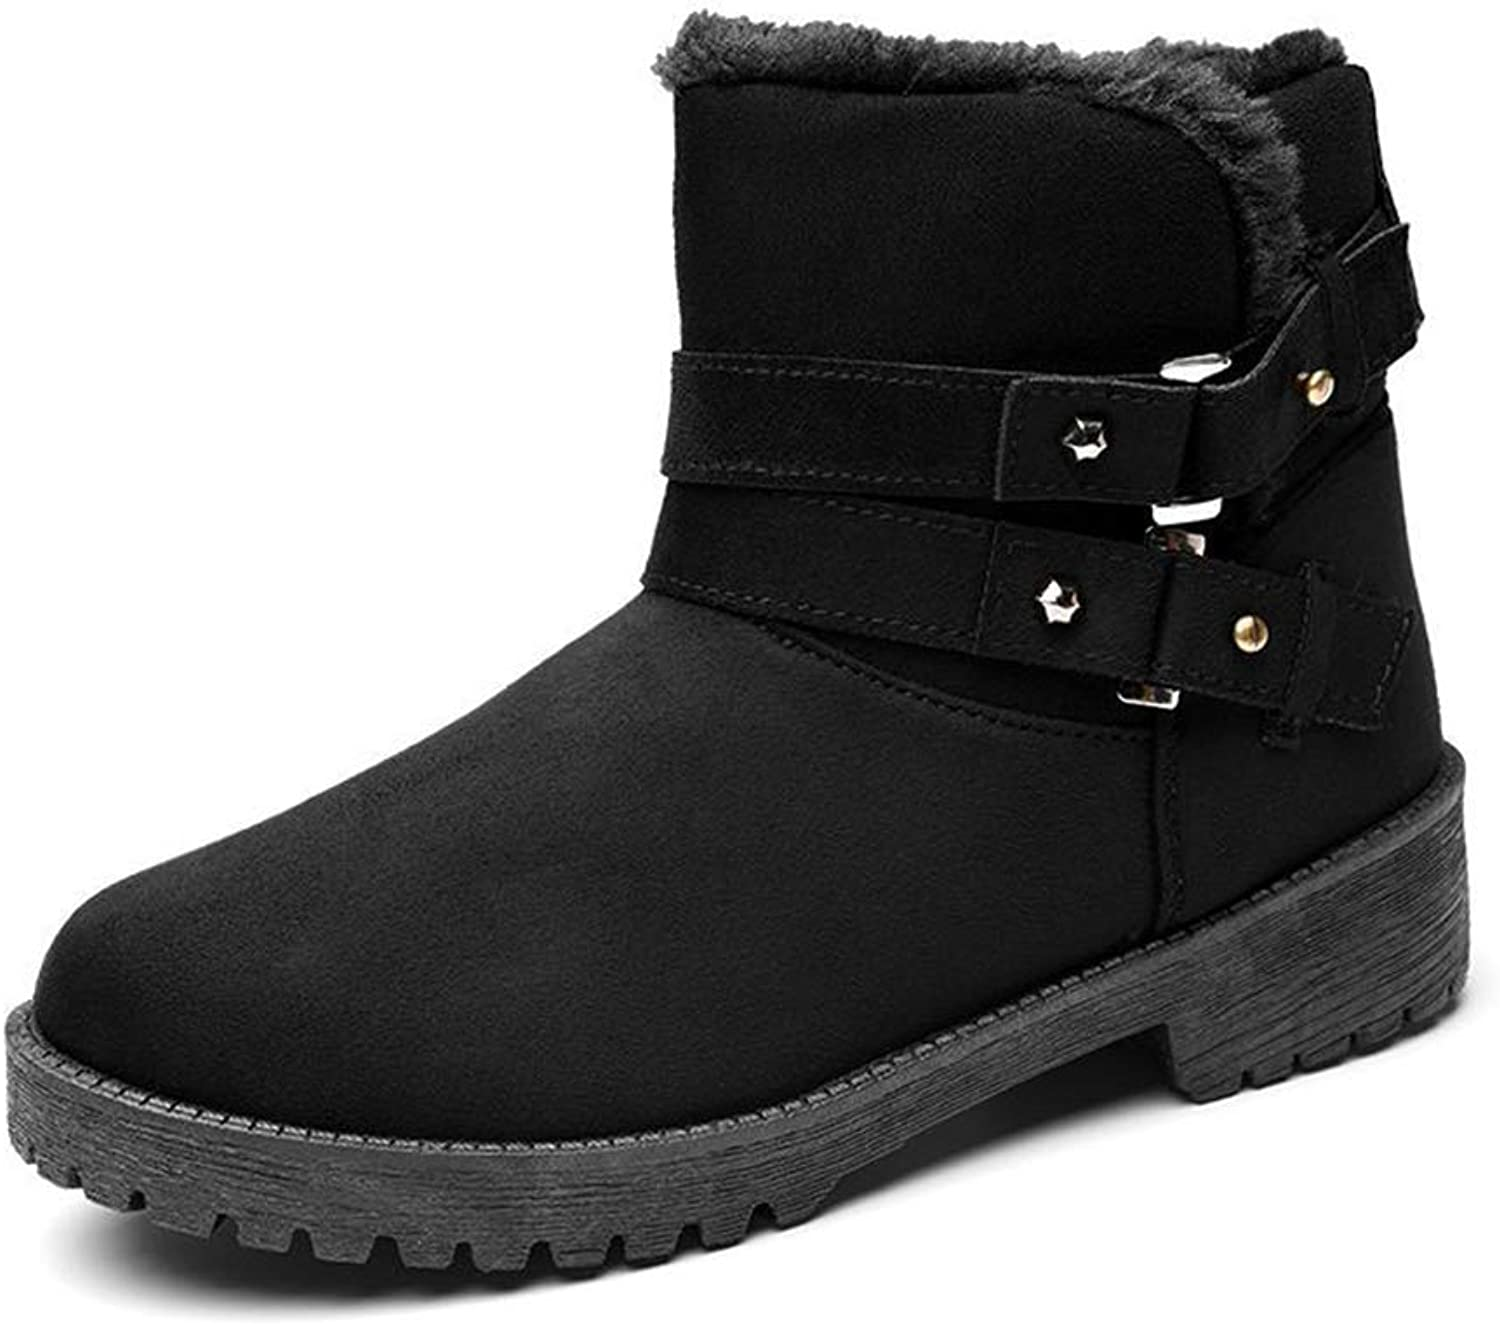 Drew Toby Women Snow Boots Winter Warm Non-Slip Wear-Resistant Round Toe Booties